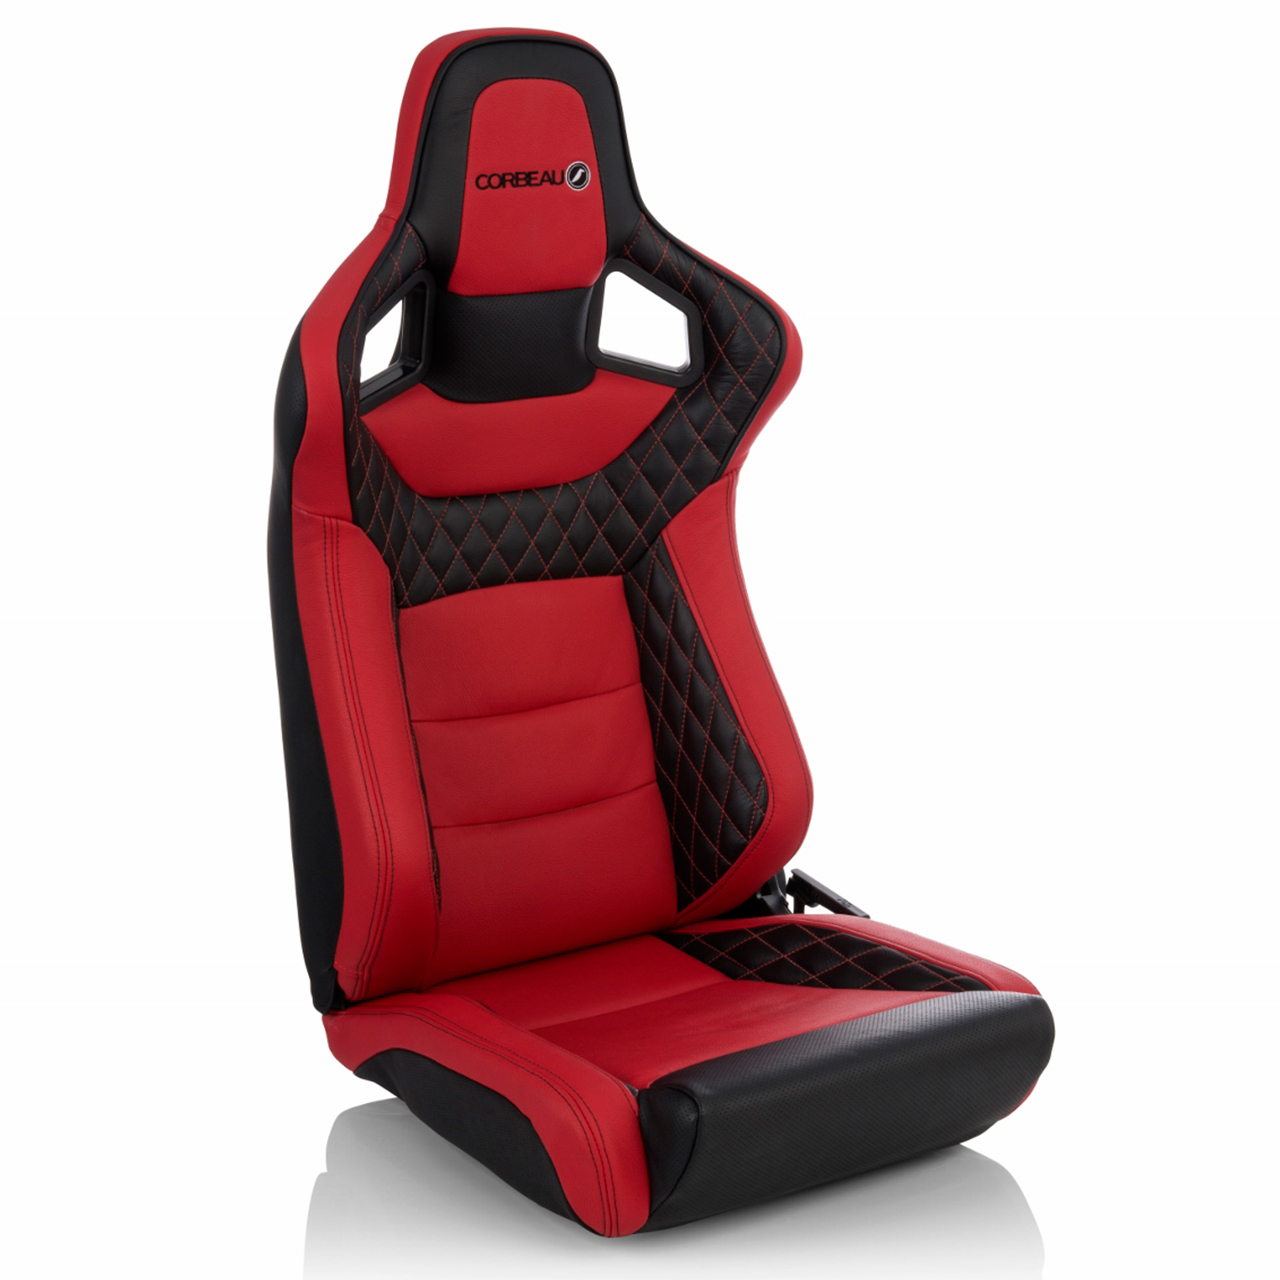 Corbeau Sportline RRS Reclining Bucket Seat (Low Base) with Red and Black Elite Upgrade